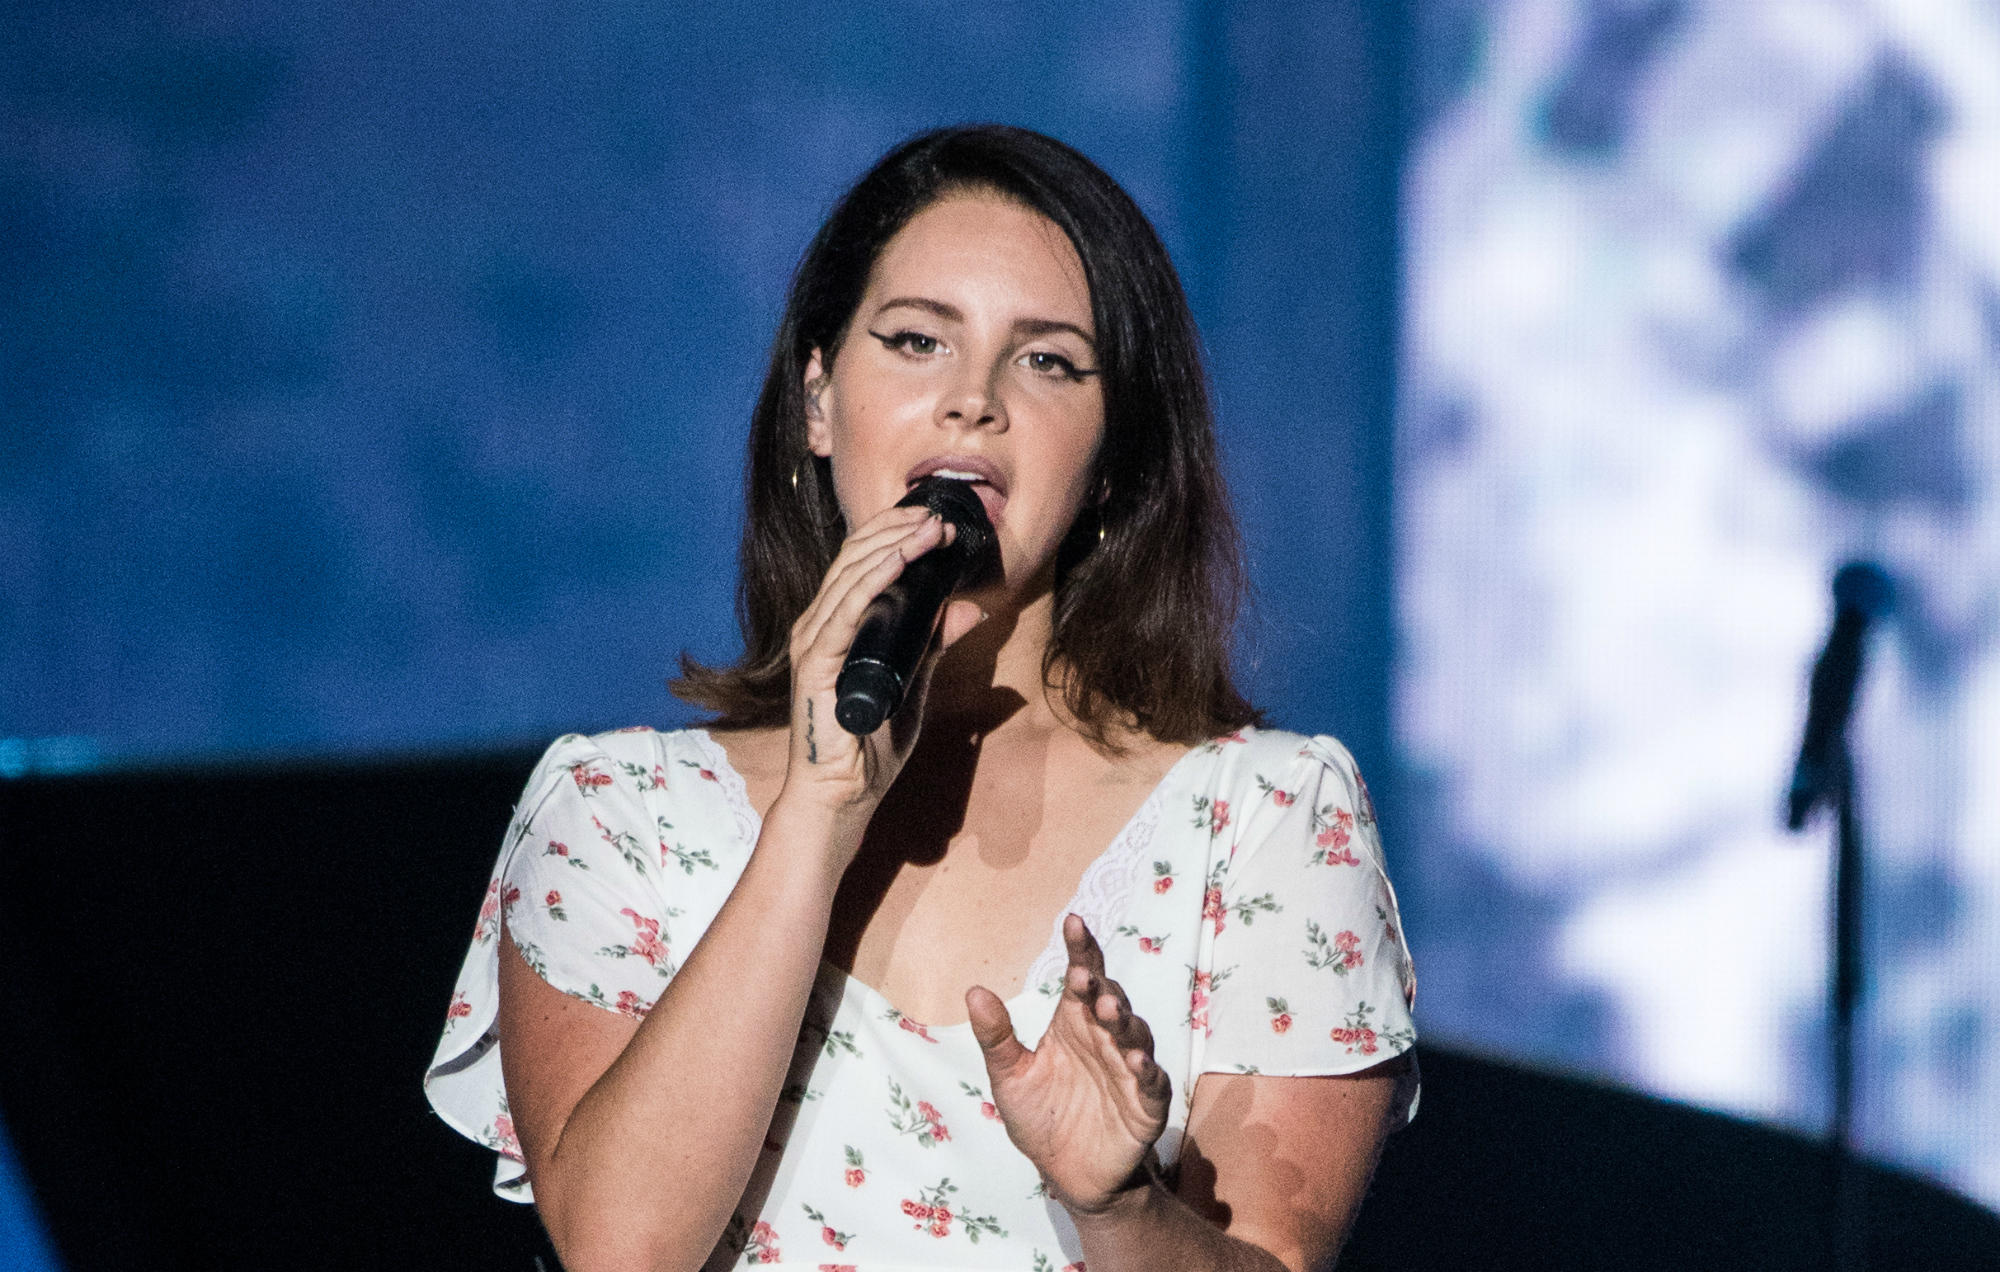 Lana Del Rey's stalker sentenced to one year in prison https://t.co/GJ90UfitWJ https://t.co/GUfKzn8ndr